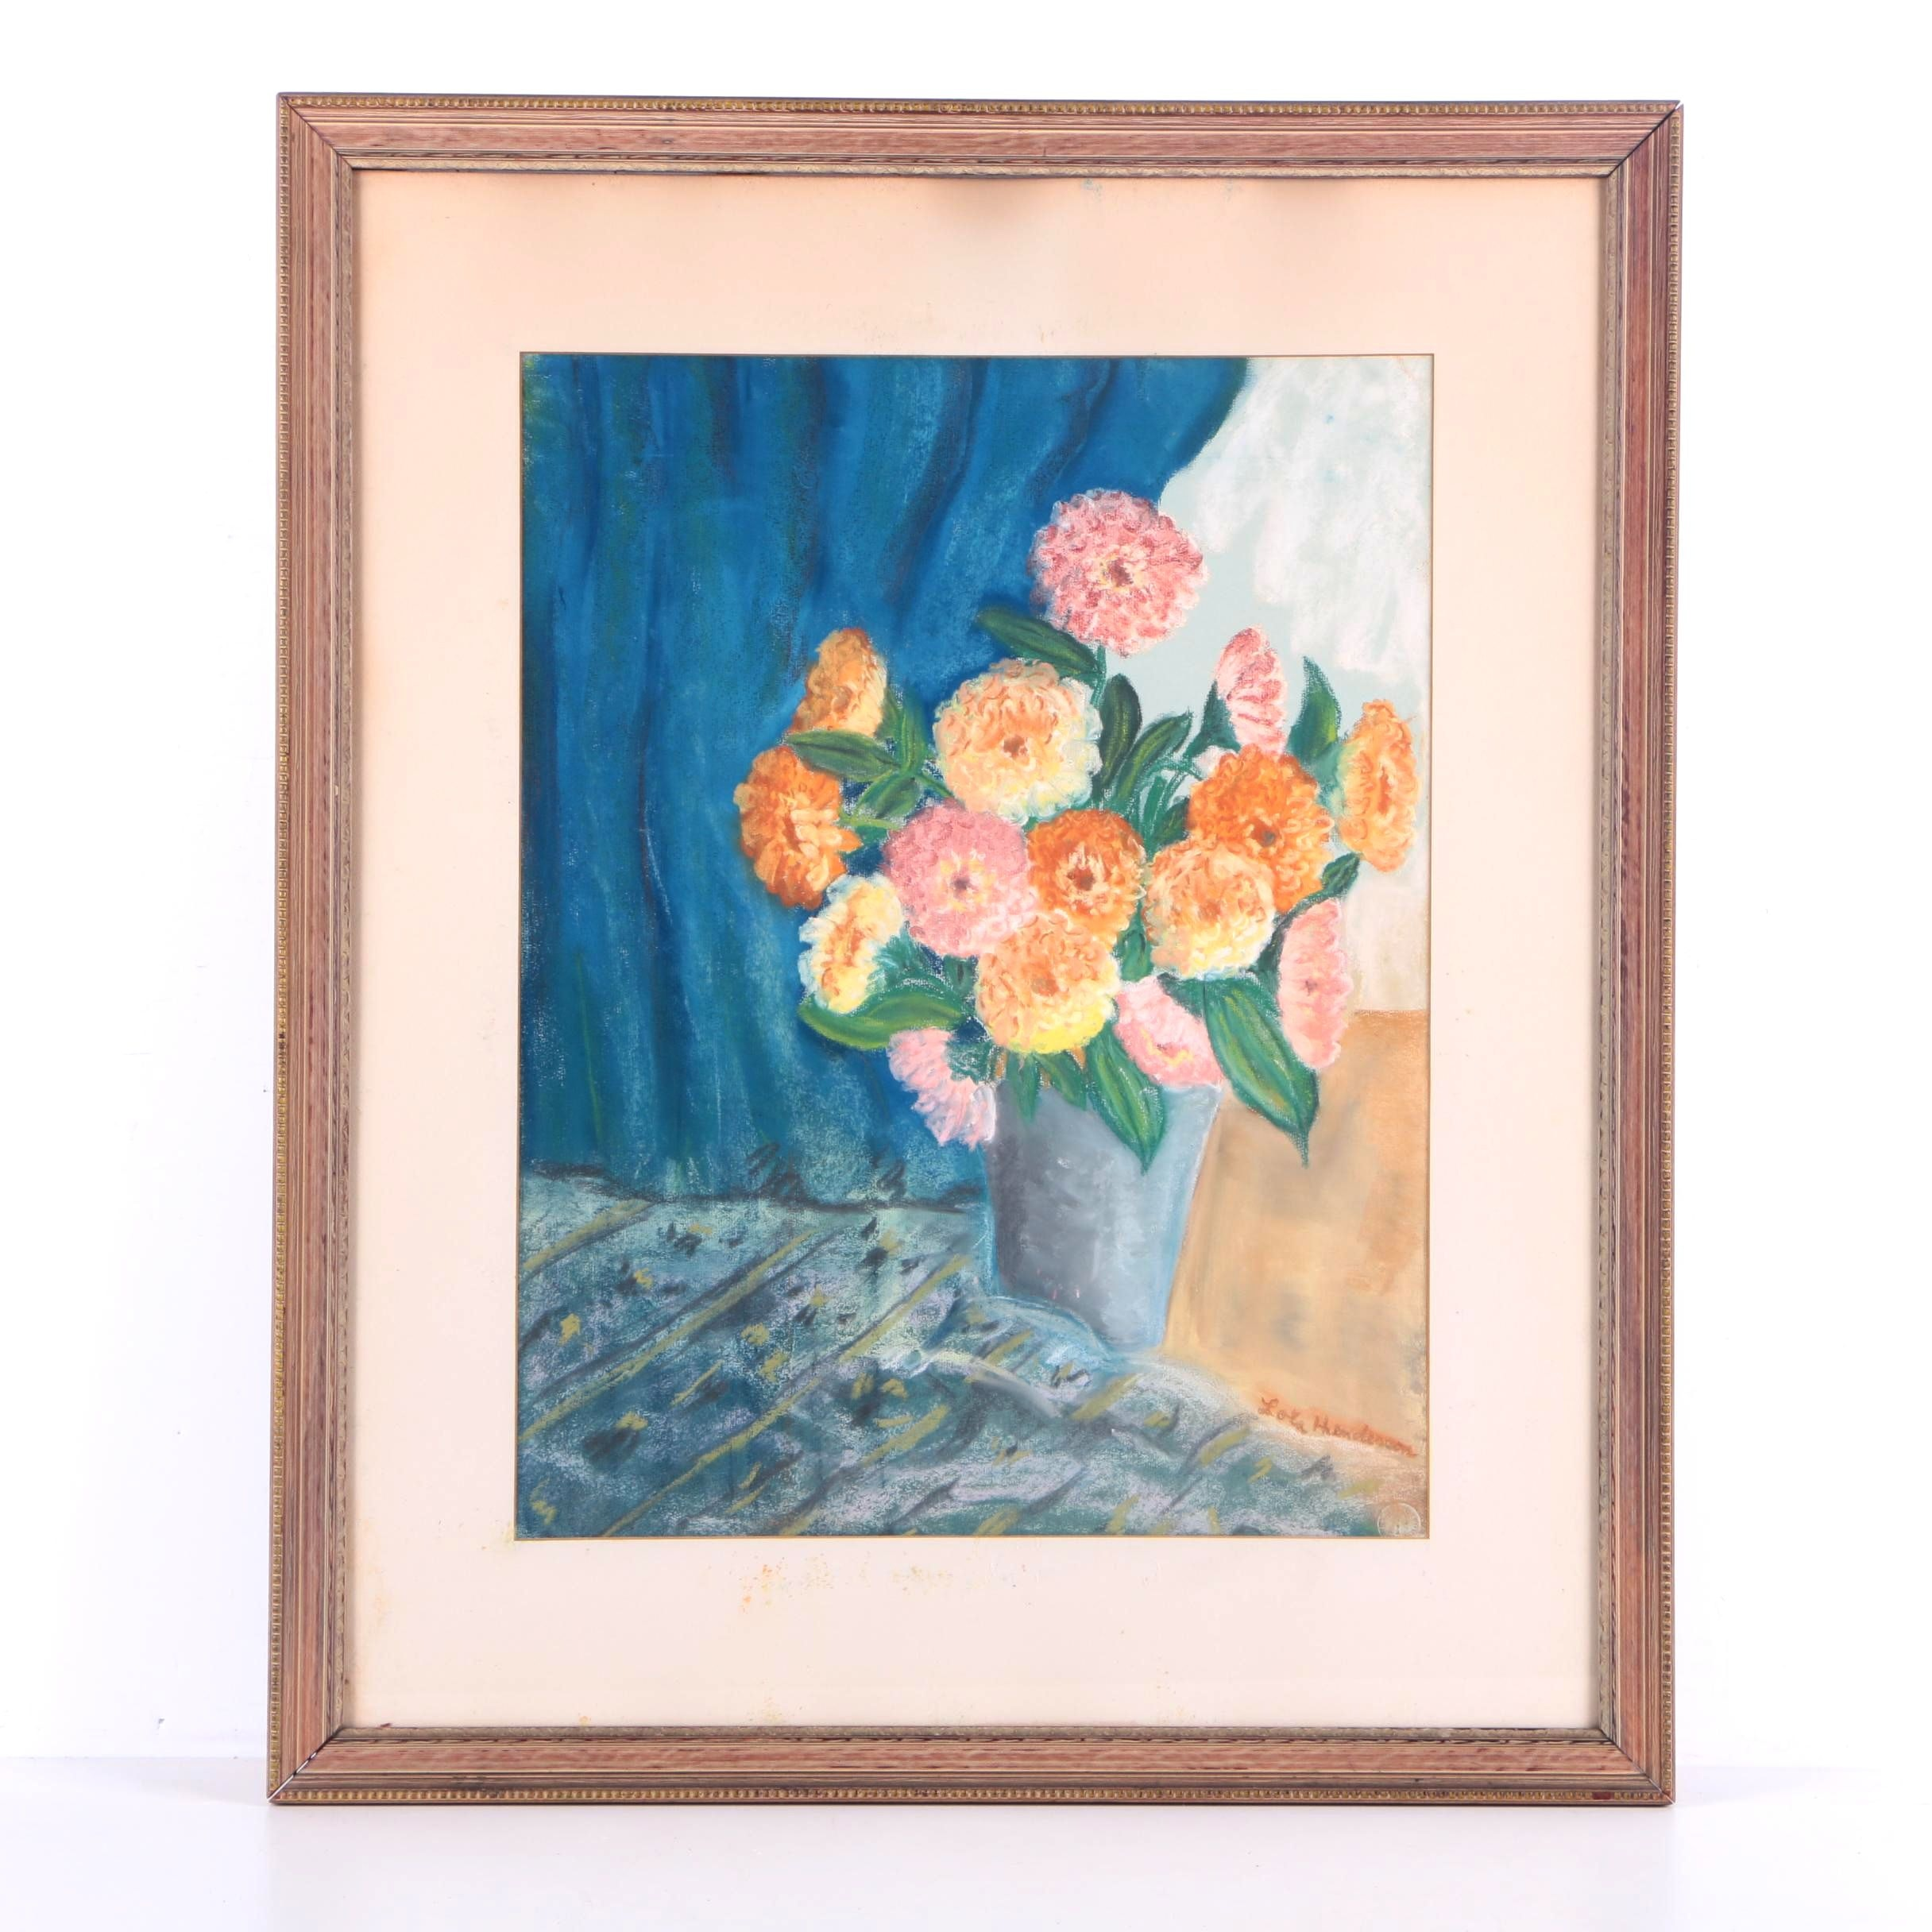 Lola Henderson Pastel Drawing on Paper Floral Still Life